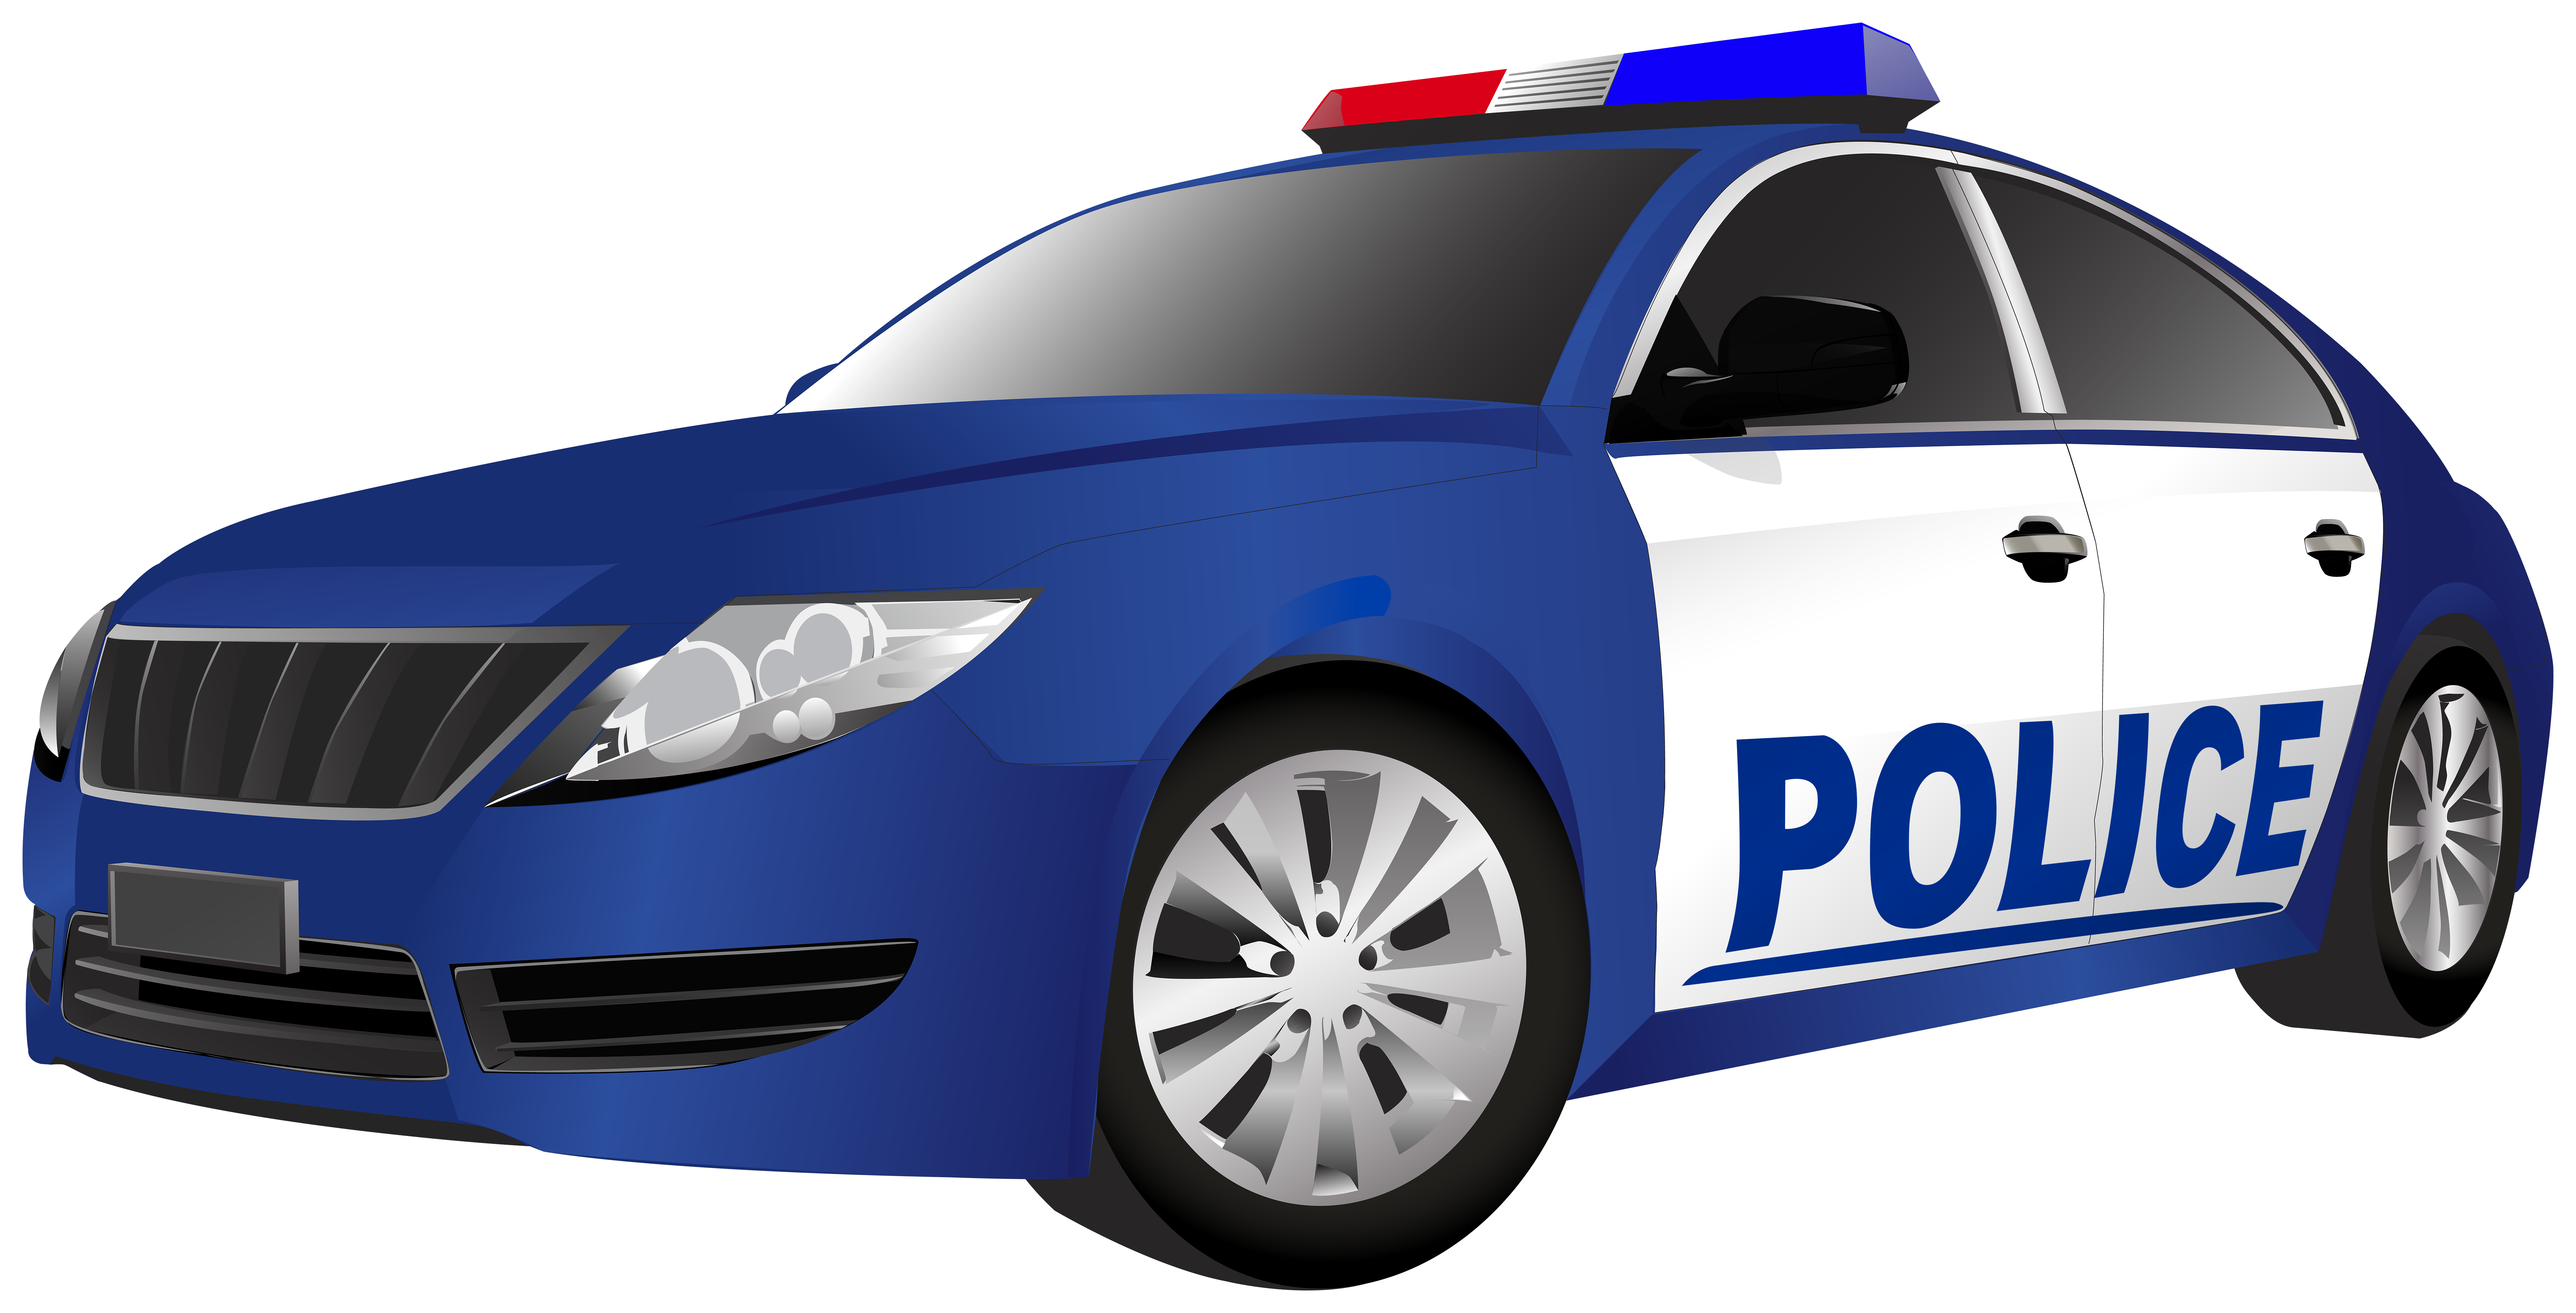 Poklice Png - Police Car PNG Clipart   Gallery Yopriceville - High-Quality ...